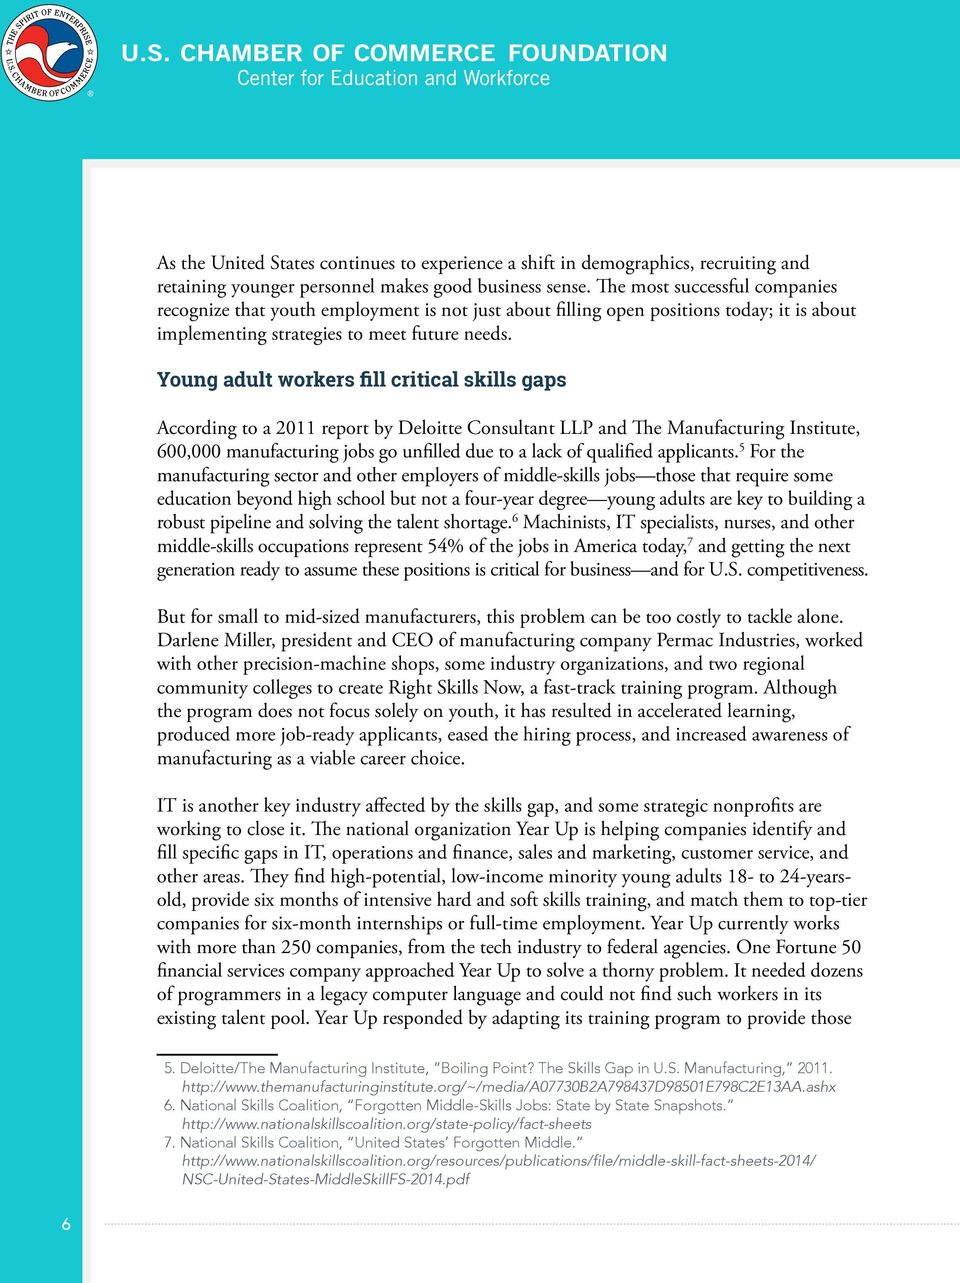 Young adult workers fill critical skills gaps According to a 2011 report by Deloitte Consultant LLP and The Manufacturing Institute, 600,000 manufacturing jobs go unfilled due to a lack of qualified